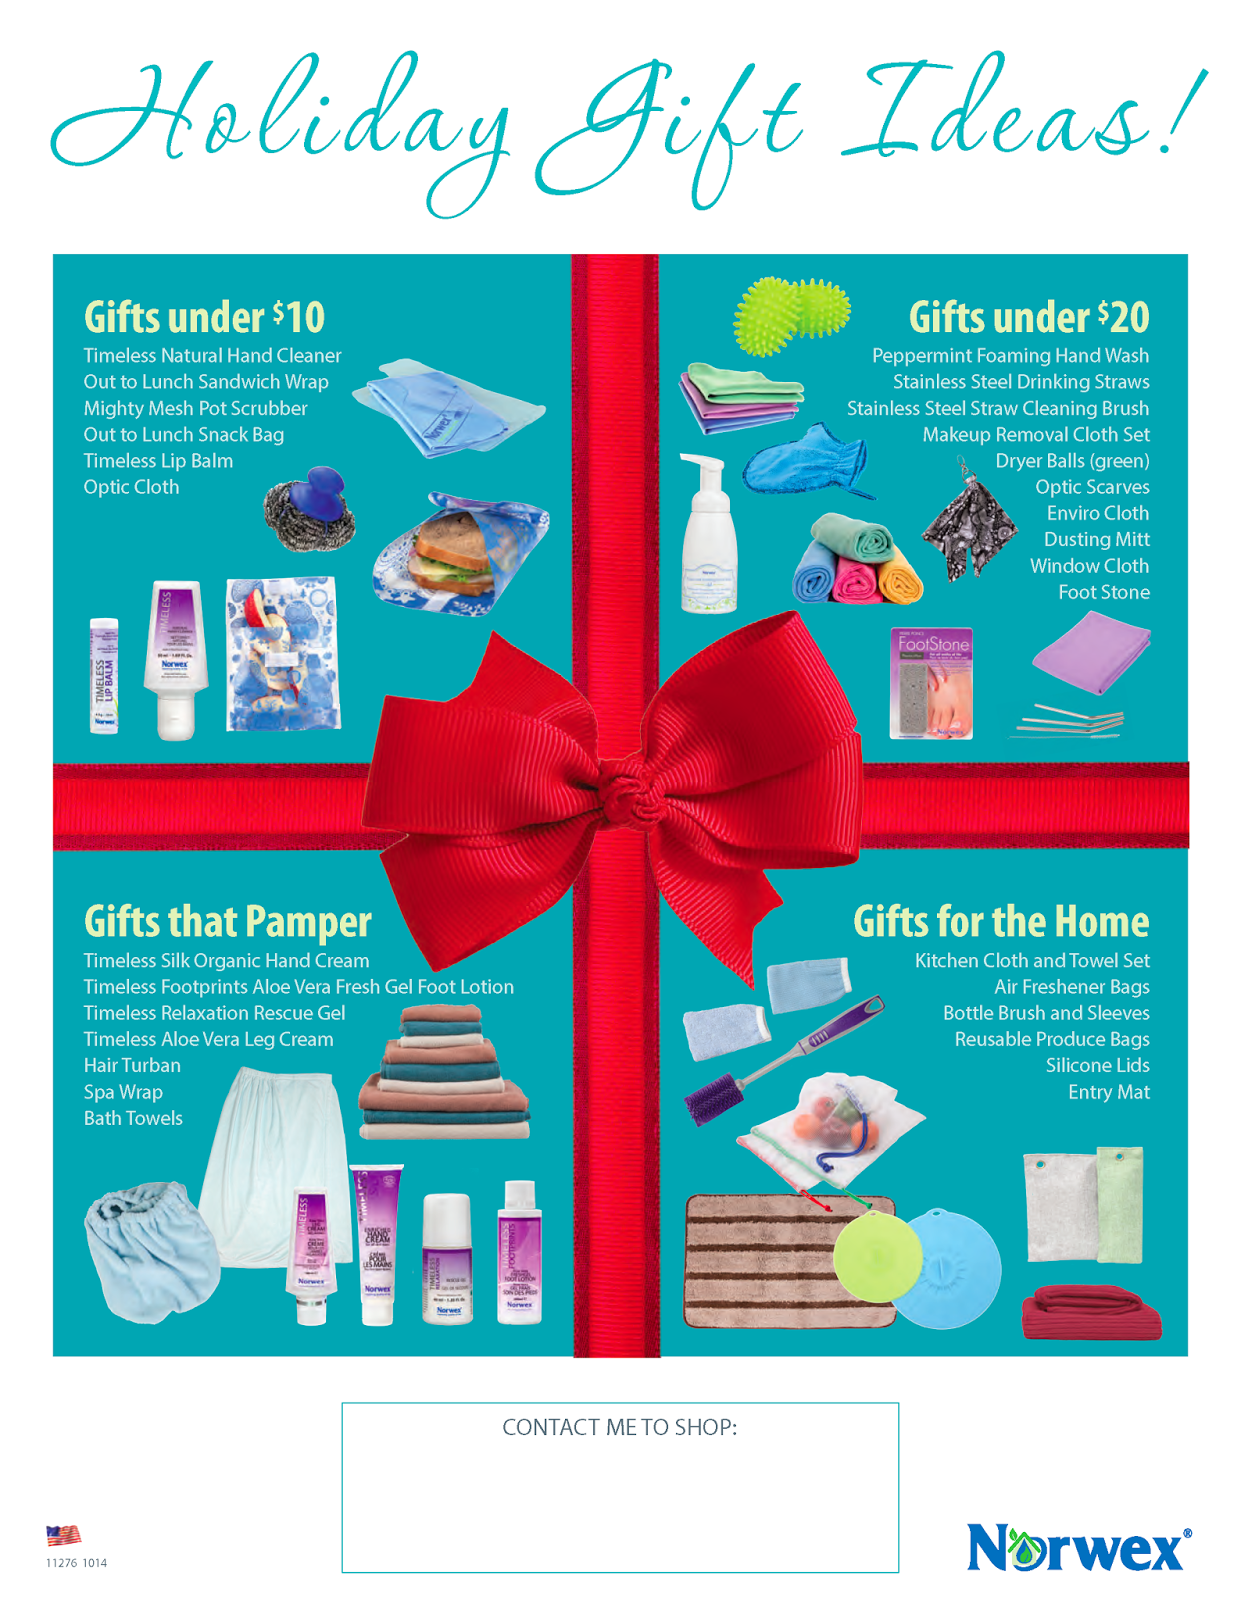 Holiday Gift Ideas! Norwex, Holiday gifts, Norwex party